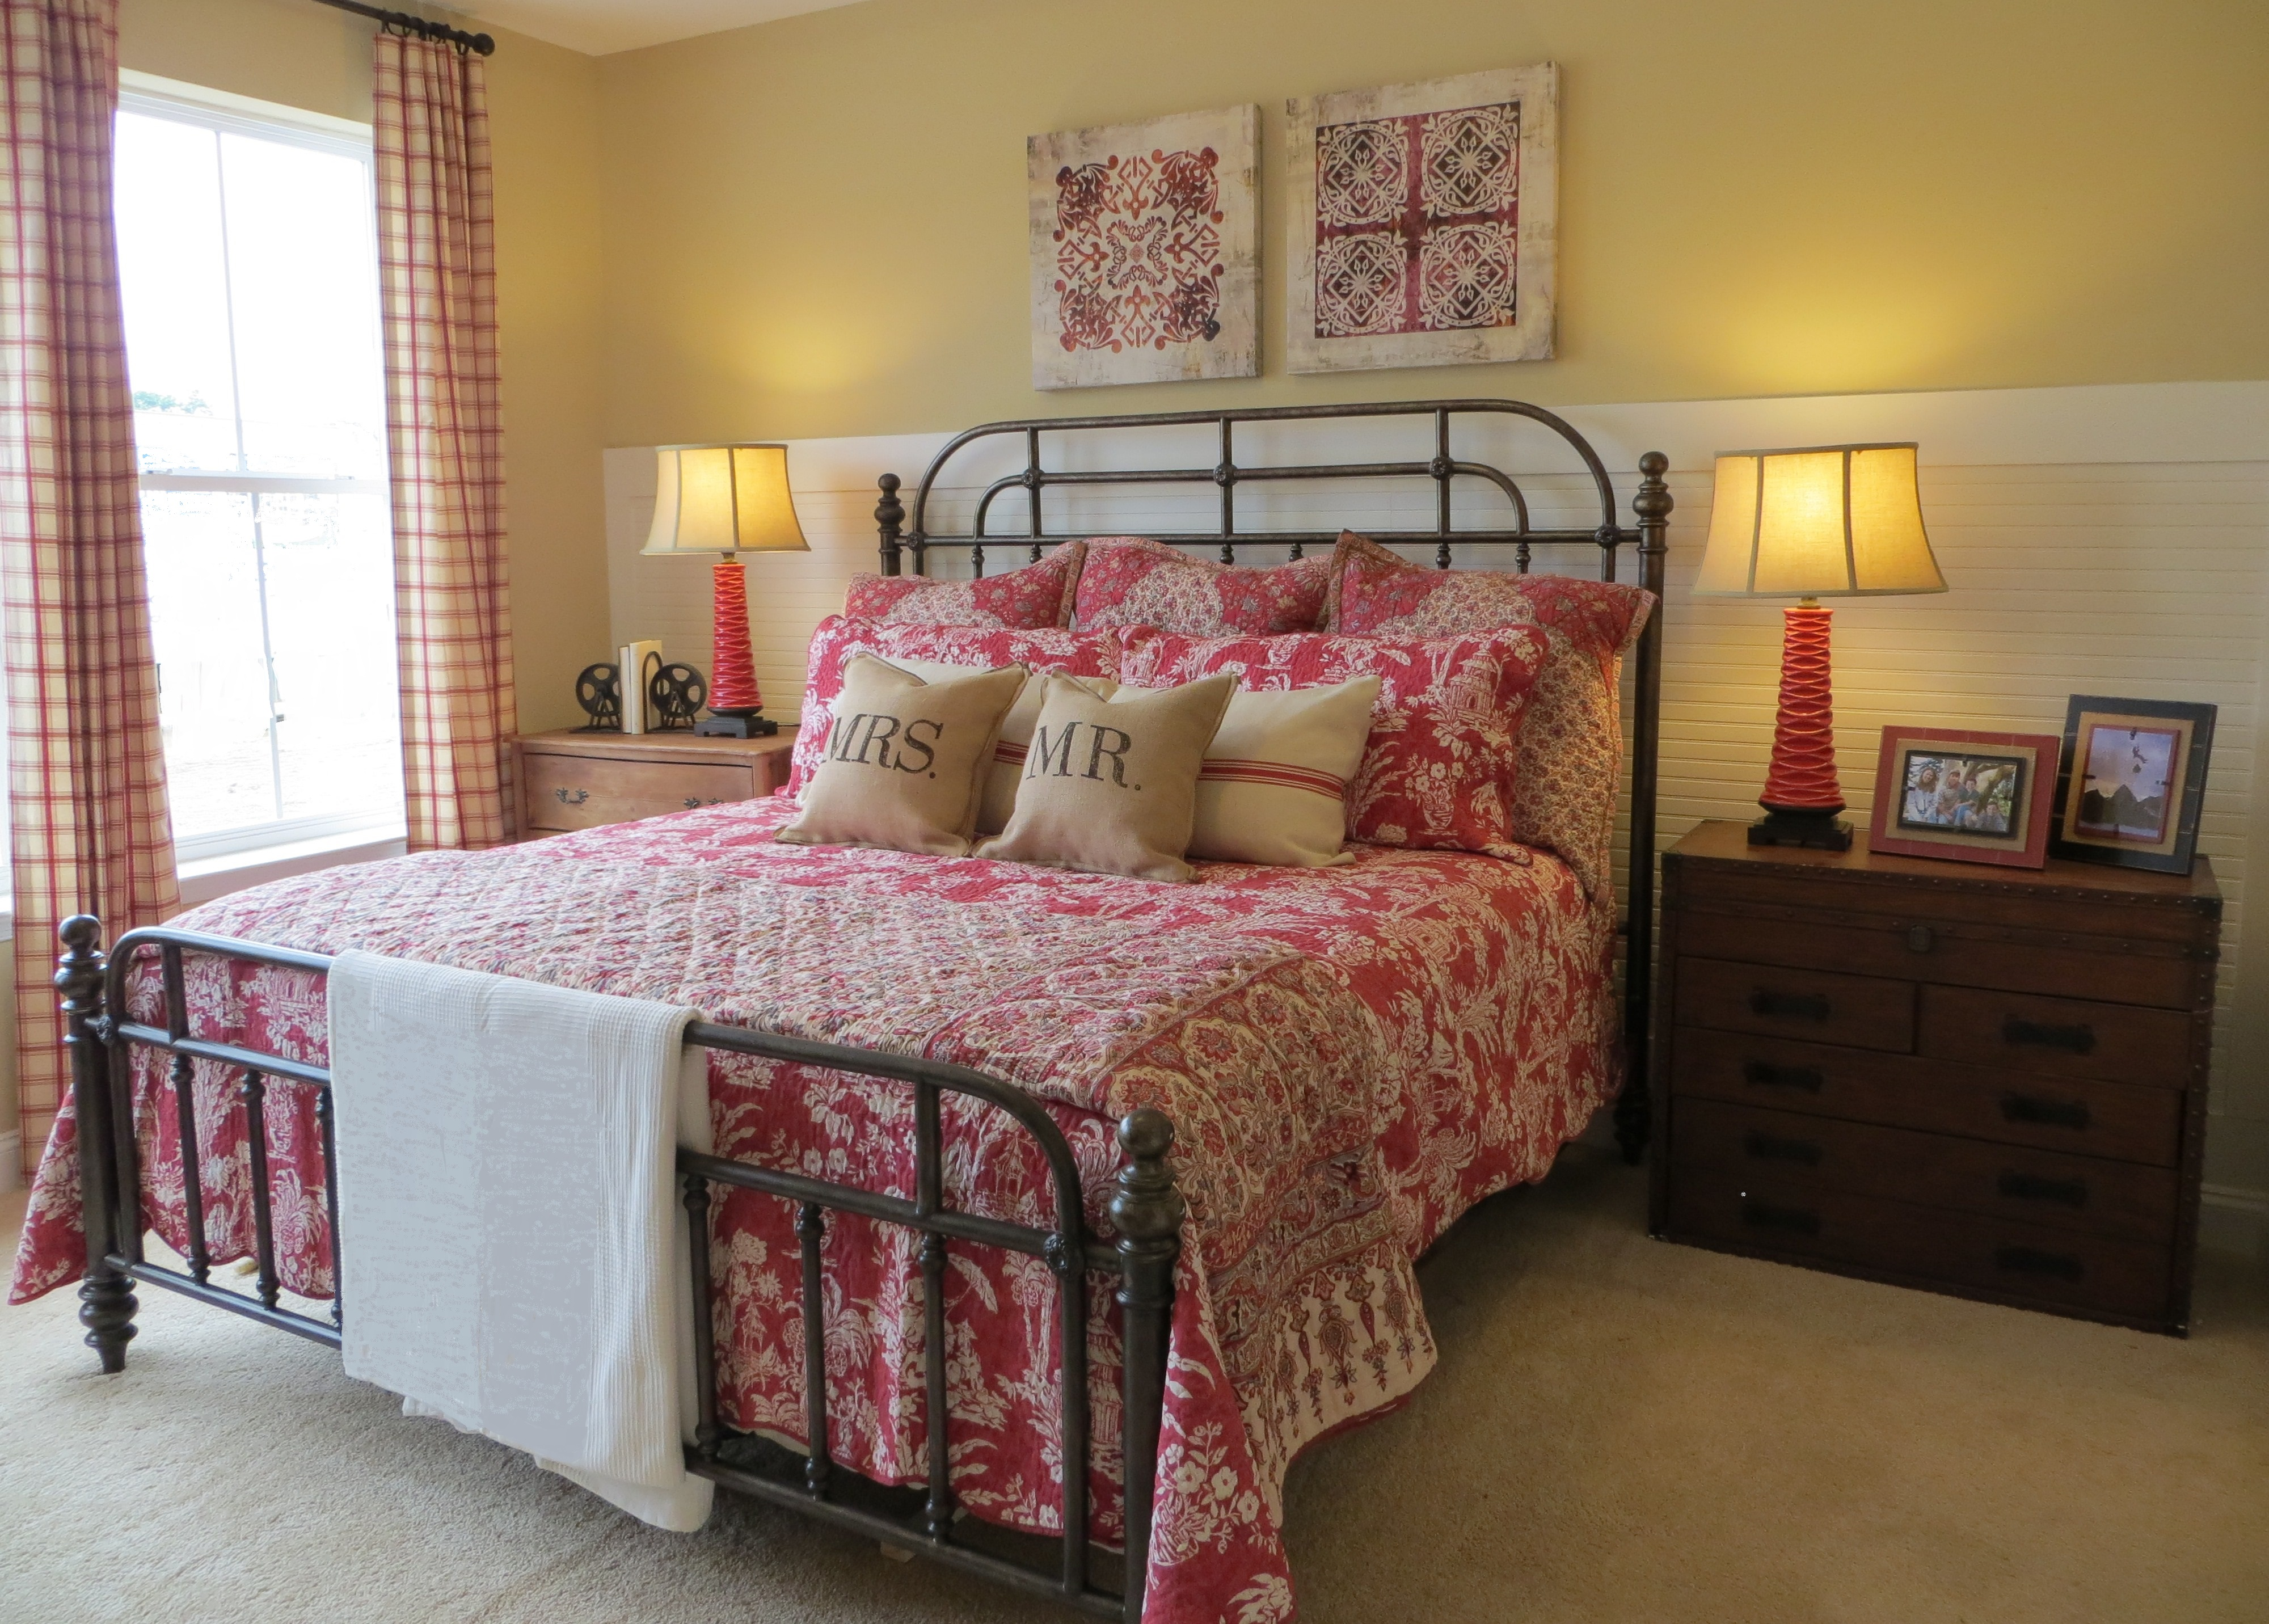 Cream Bedroom Decor: Red, Tan And Cream- Causual, Cottage Style